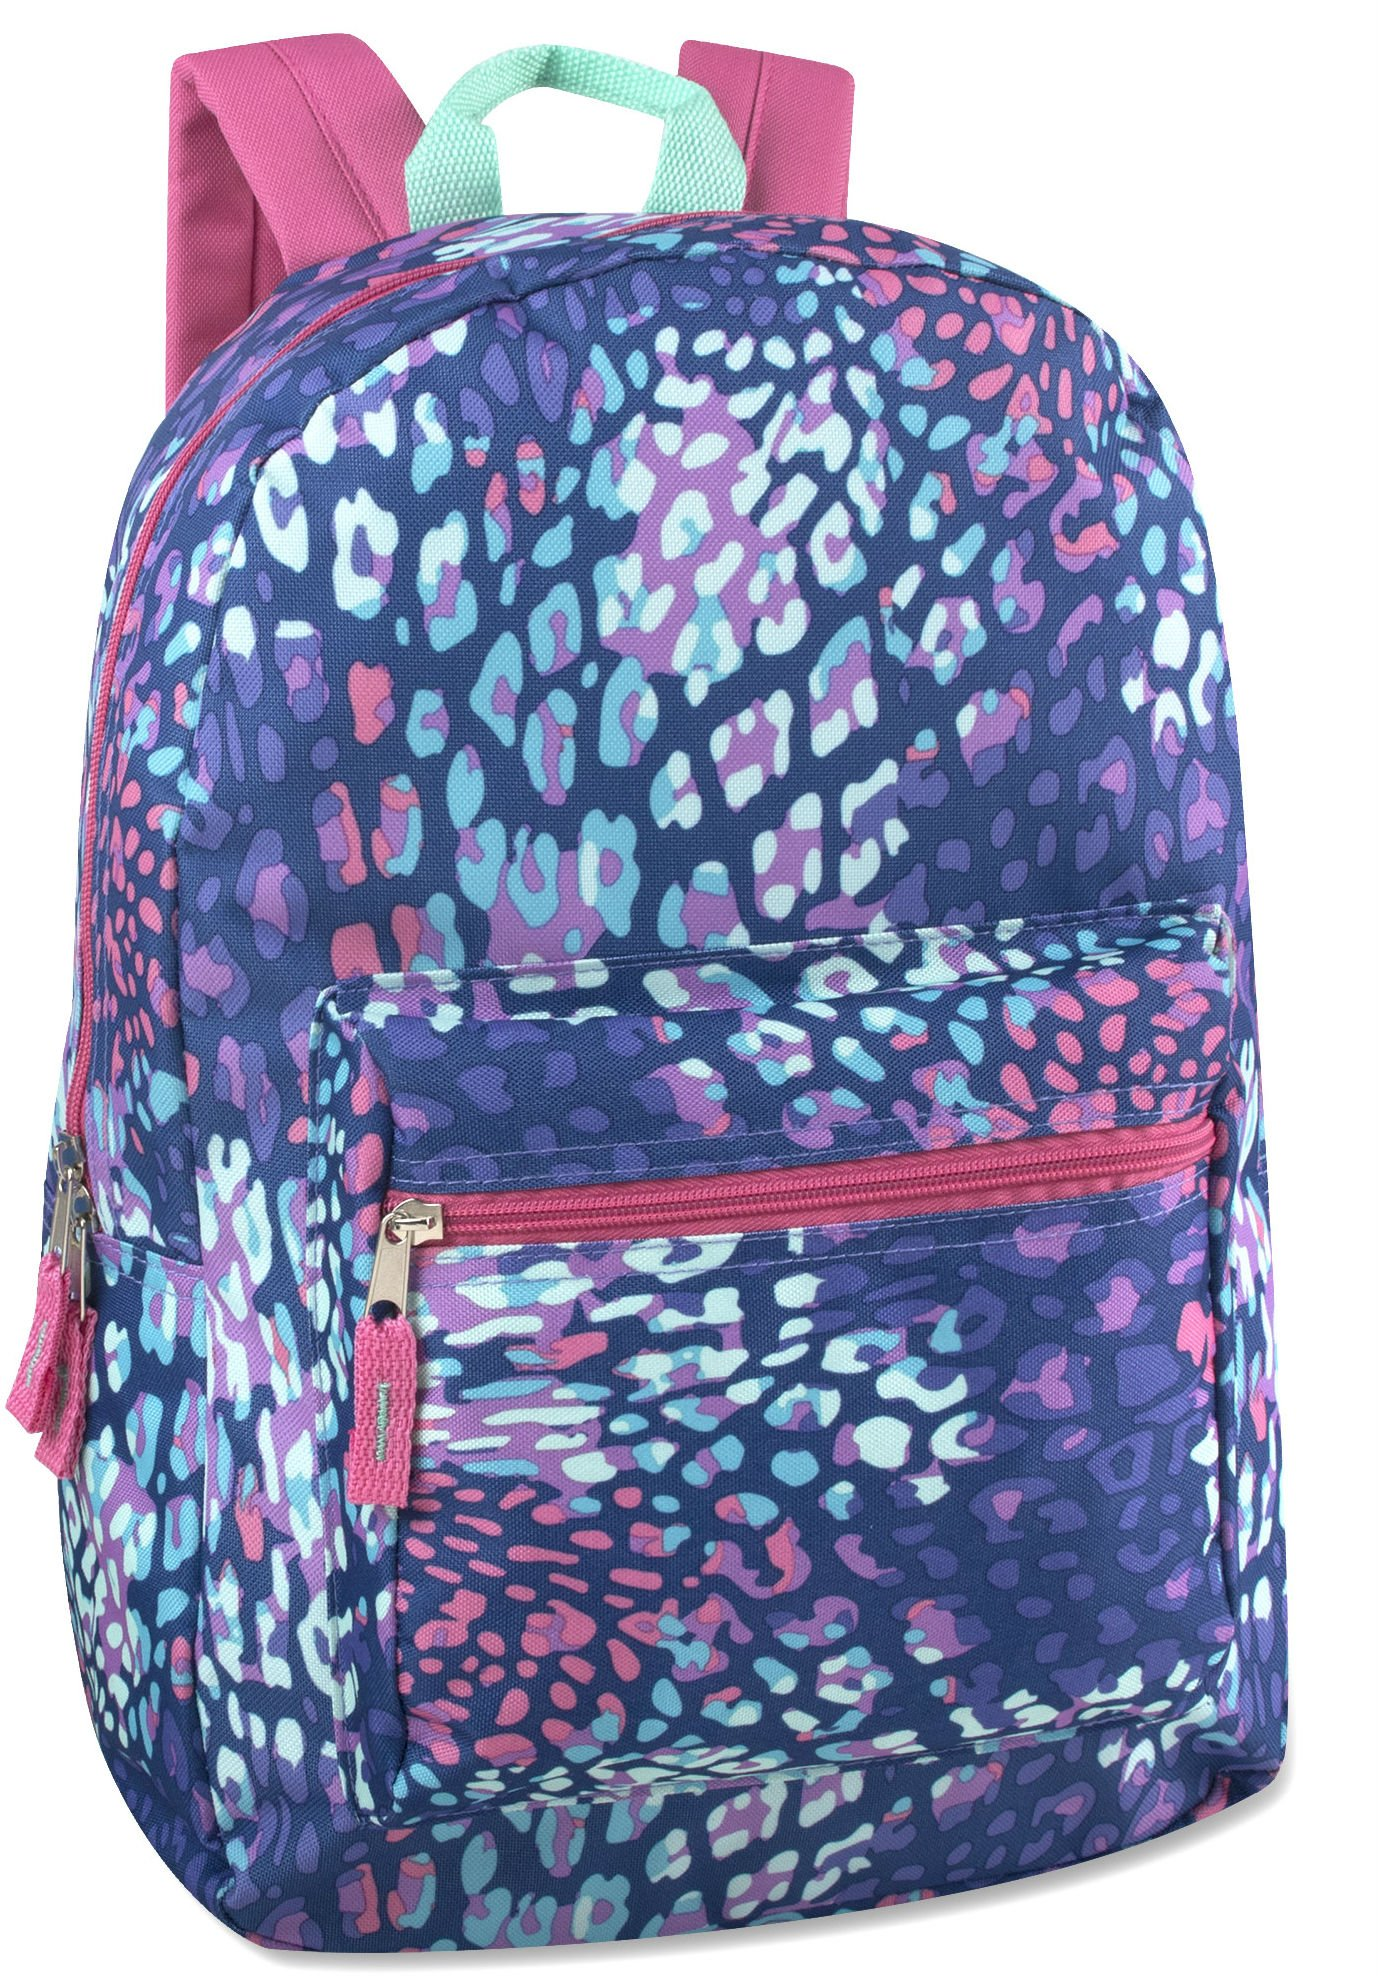 17'' Trailmaker Backpack Bookbag- animal 4615 by Trail maker (Image #1)